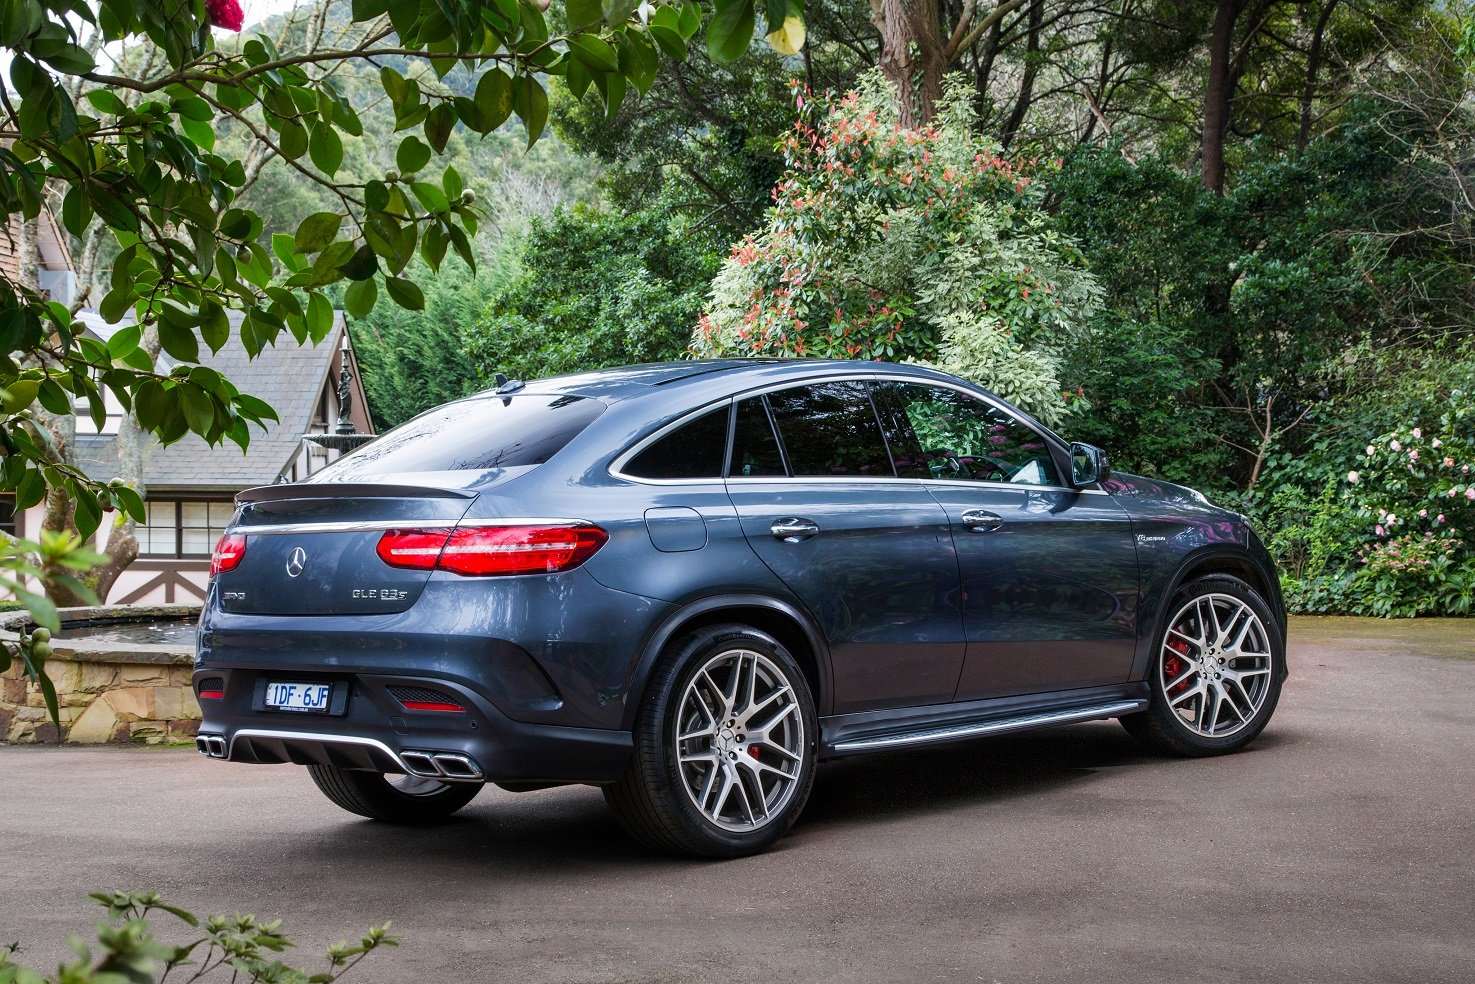 mercedes amg gle 63 s 4matic coupe au spec c292 cars suv. Black Bedroom Furniture Sets. Home Design Ideas